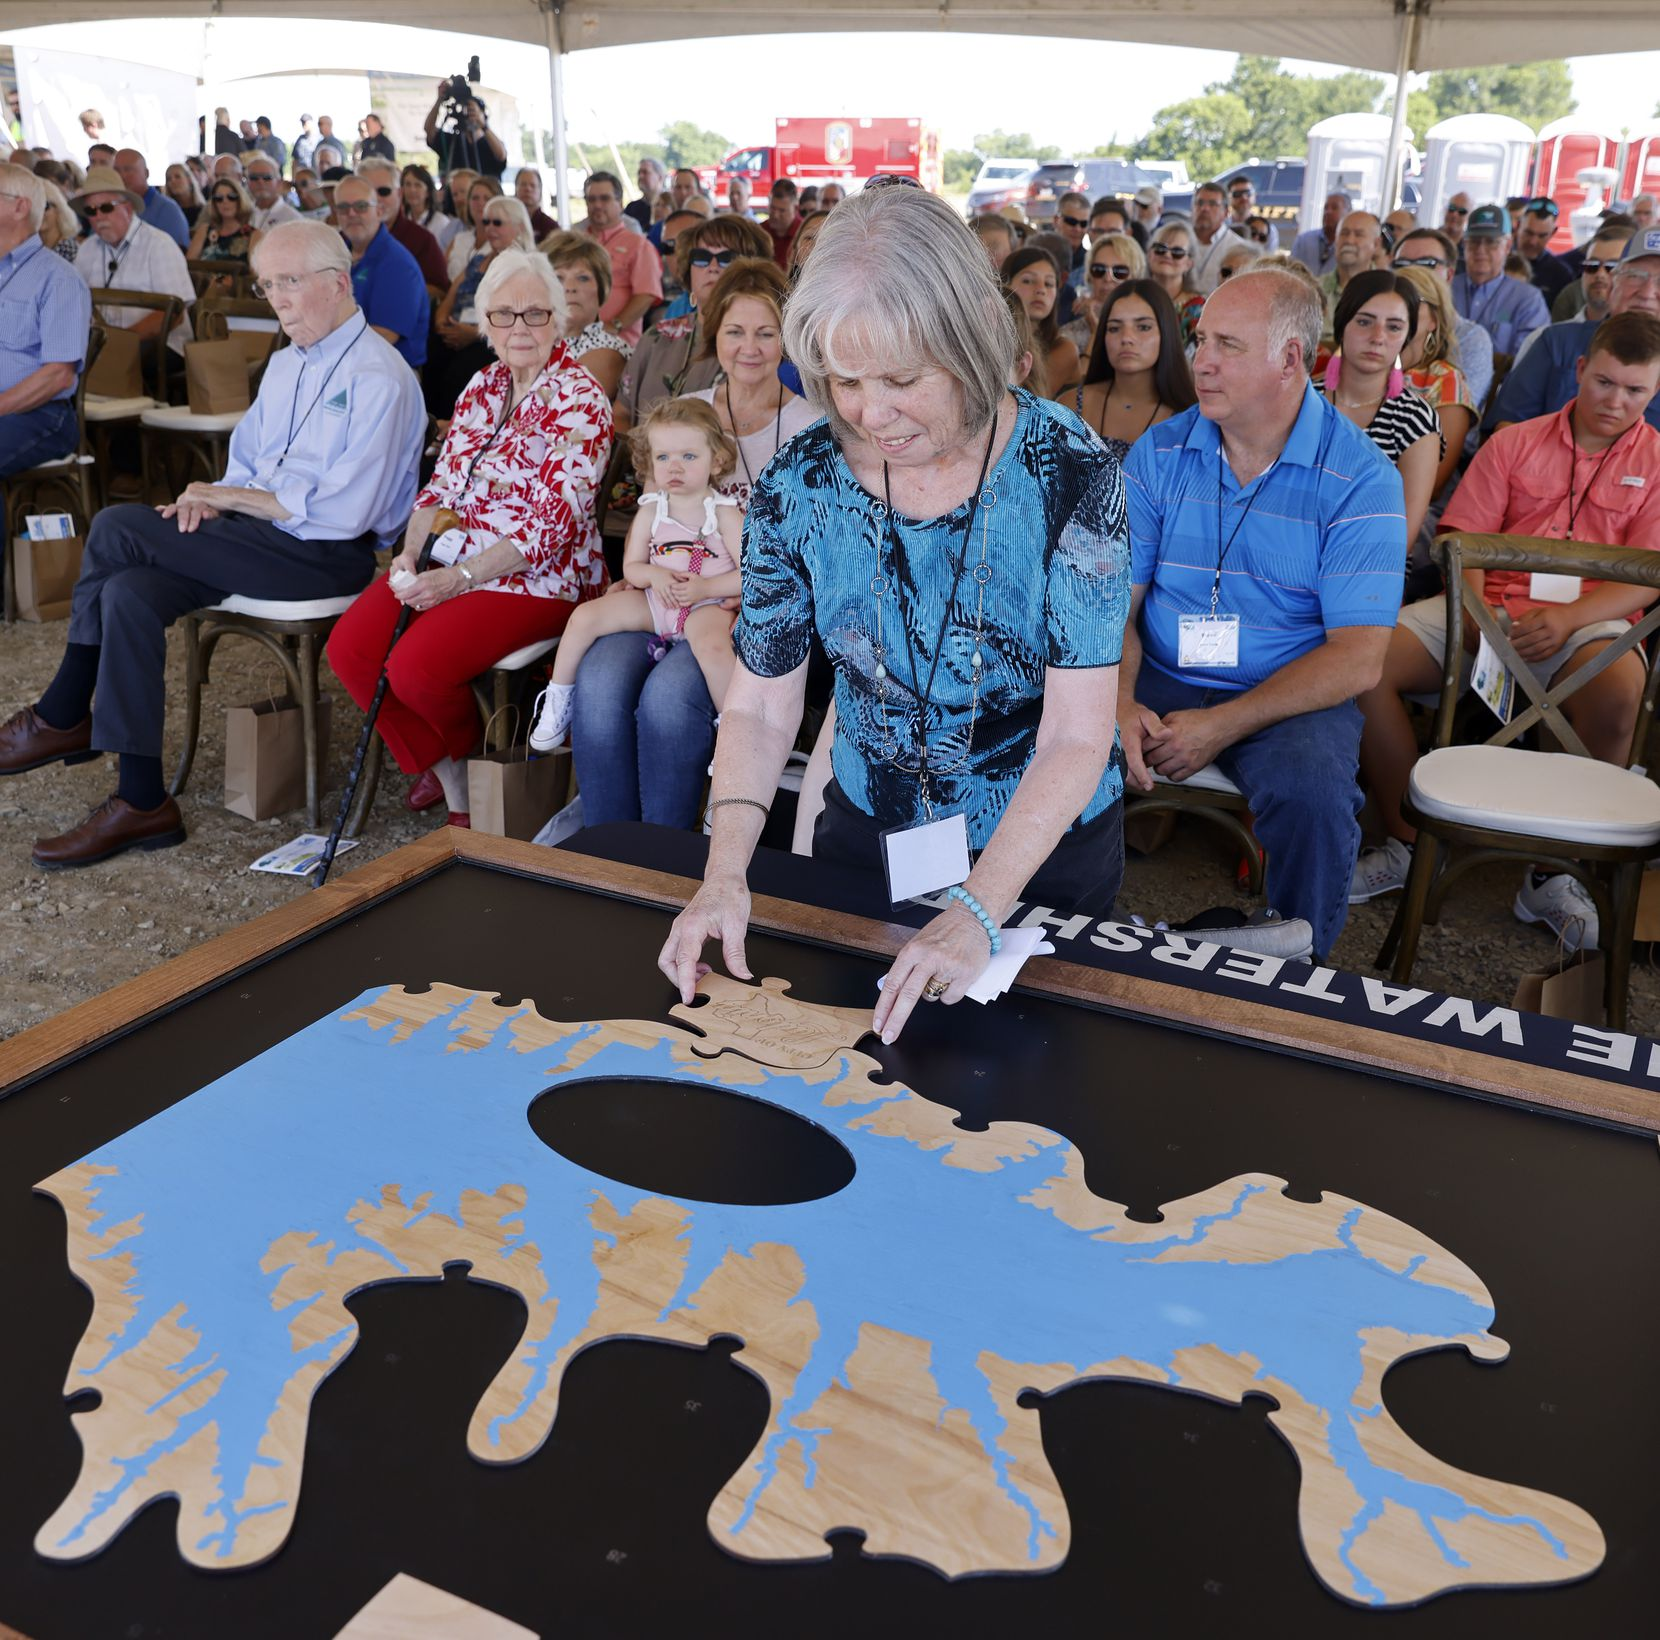 Ladonia Mayor Jan Cooper adds a wooden piece representing her city to the Upper Trinity Regional Water District puzzle. All of the organizations involved in the Lake Ralph Hall and the Leon Hurse Dam project near Ladonia were given a puzzle piece on Wednesday, June 16, 2021. The lake will provide 54 million gallons of water per day for some 29 communities in Denton and Collin counties. The $490 million project should begin delivering water by 2025. The lake is named after a U.S. representative for Texas' 4th congressional district.